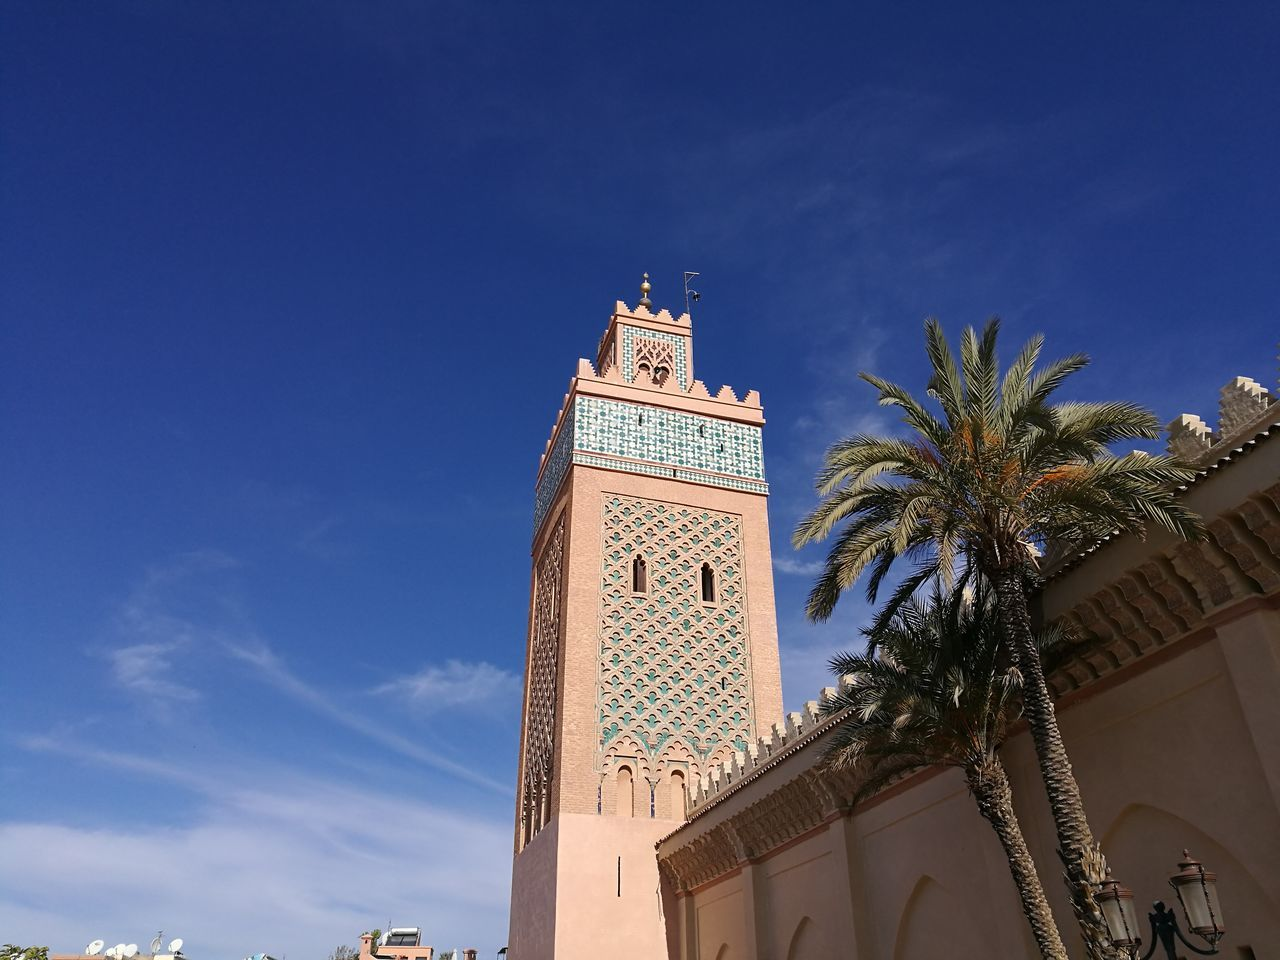 mosque moulay el yazid Architecture Blue Day Low Angle View Mosque Moulay El Yazid No People Oldcity Outdoors Palm Tree Sky Tower Tree